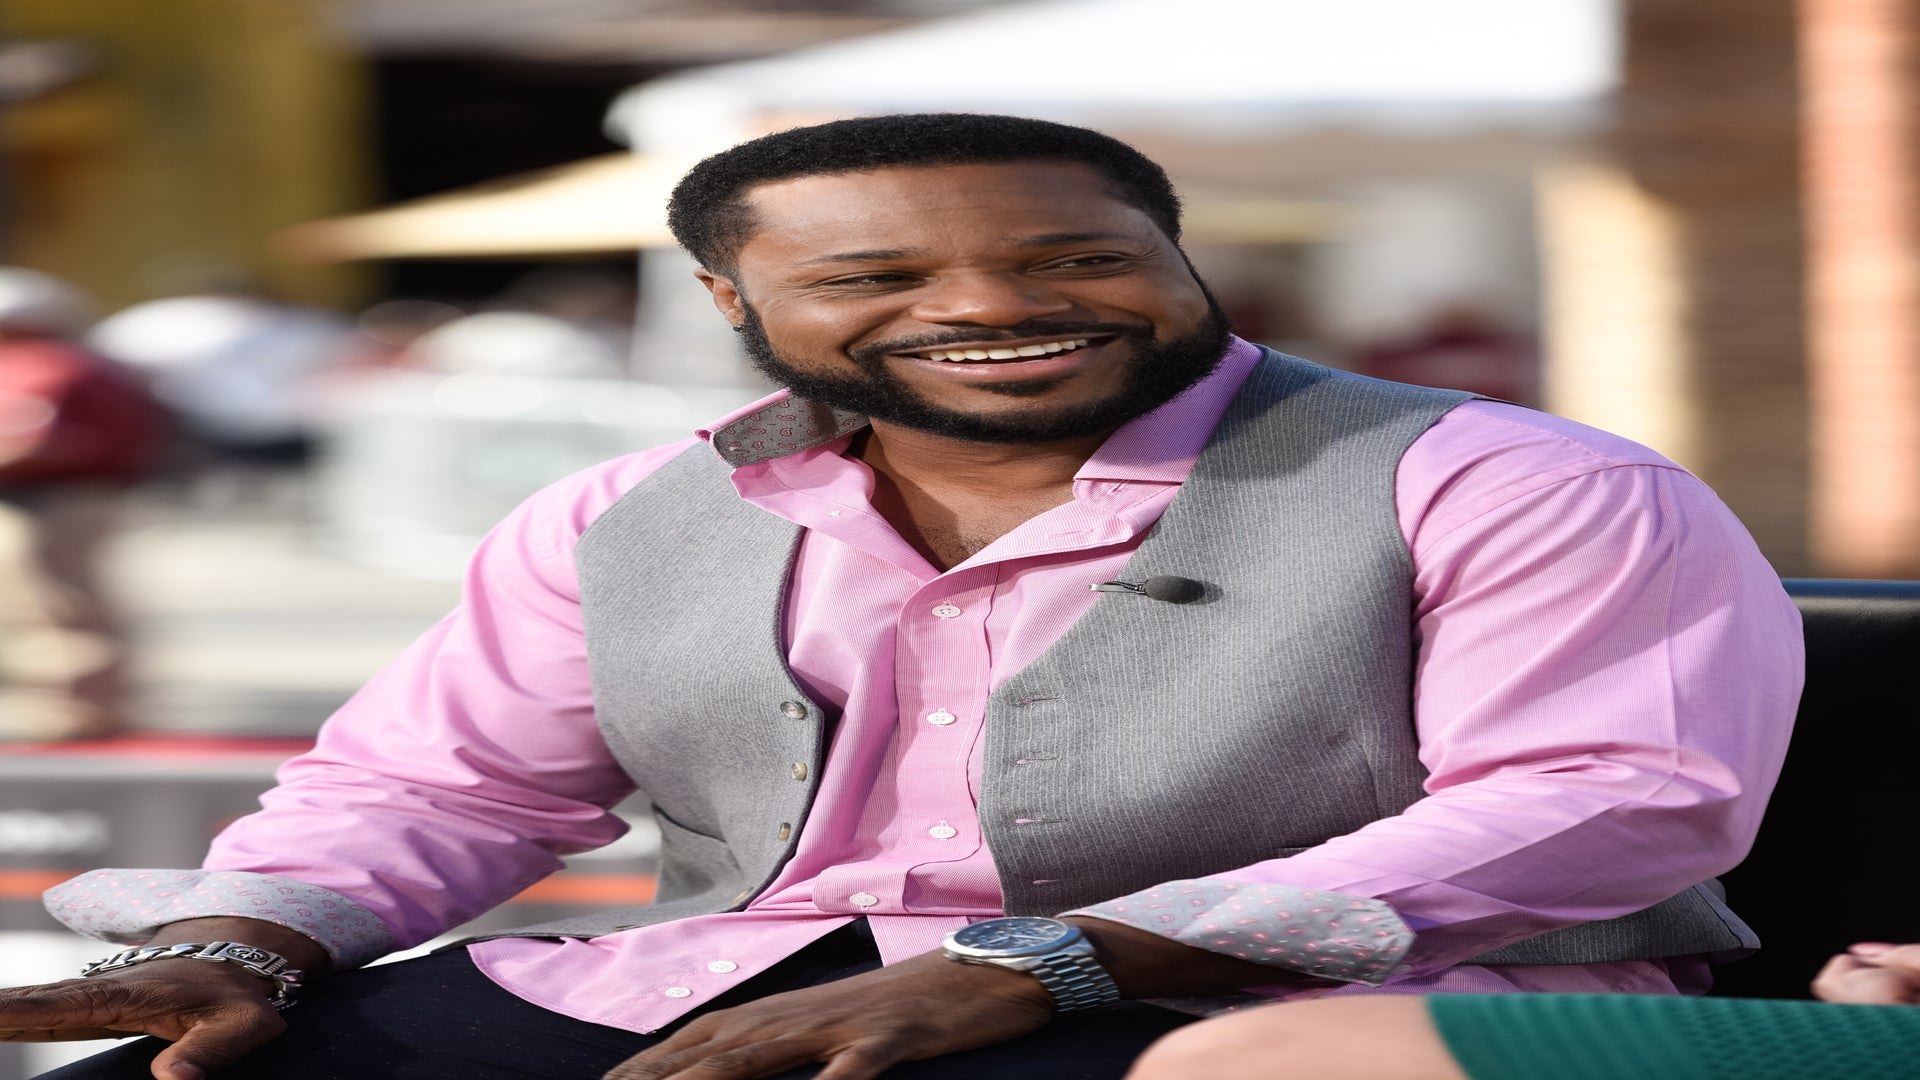 Malcolm Jamal Warner Is A New Father Essence Karen malina white was born and raised in philadelphia, pennsylvania. malcolm jamal warner is a new father